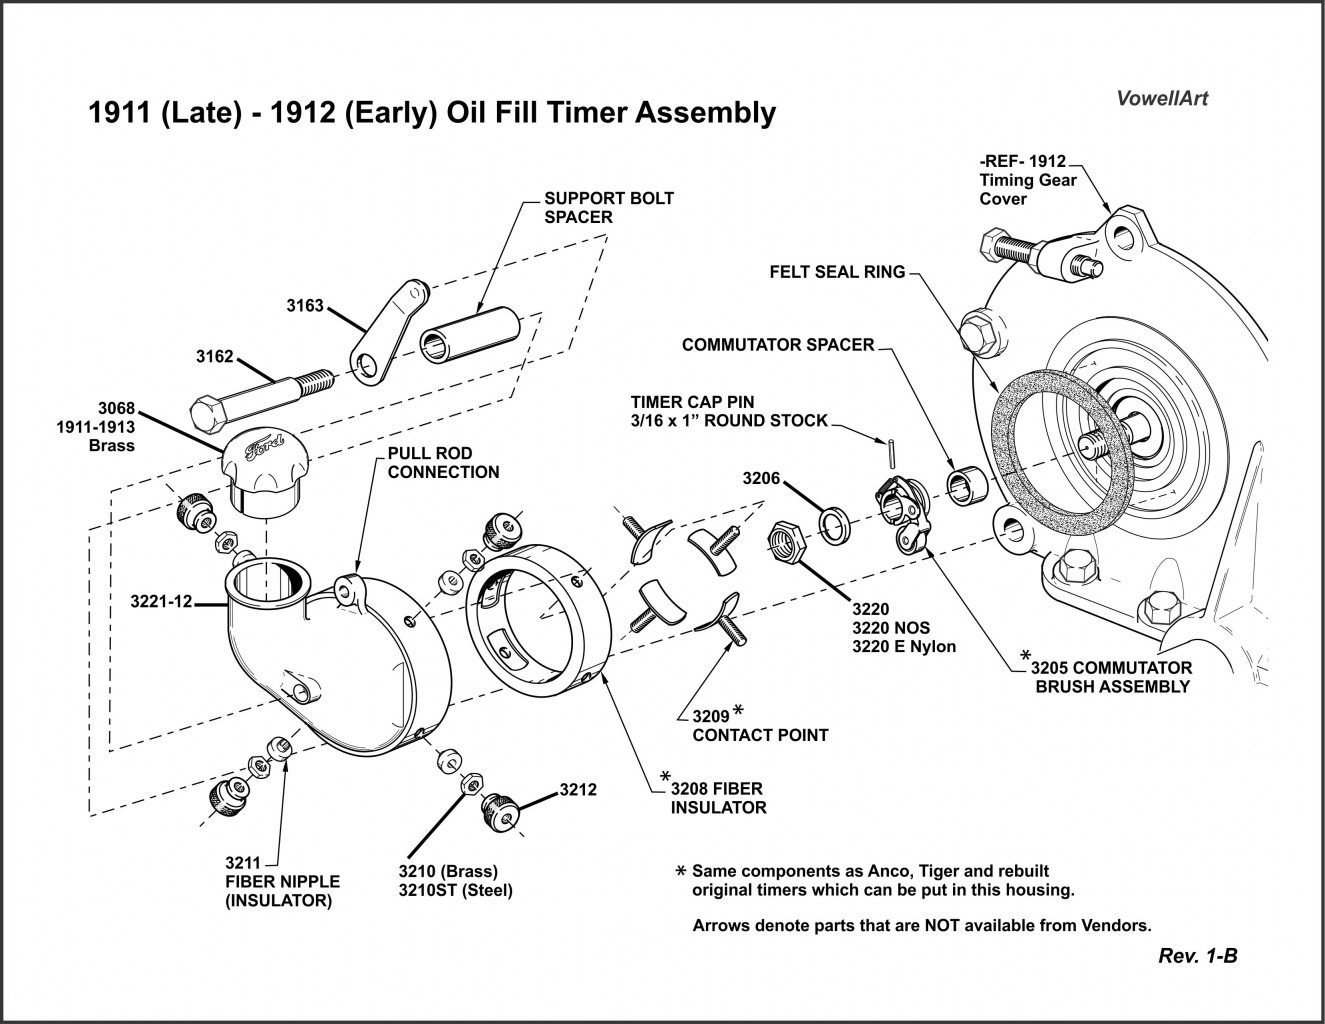 1911 (Late) 1912 (Early) Oil Fill Timer Assembly Rev. 1-B